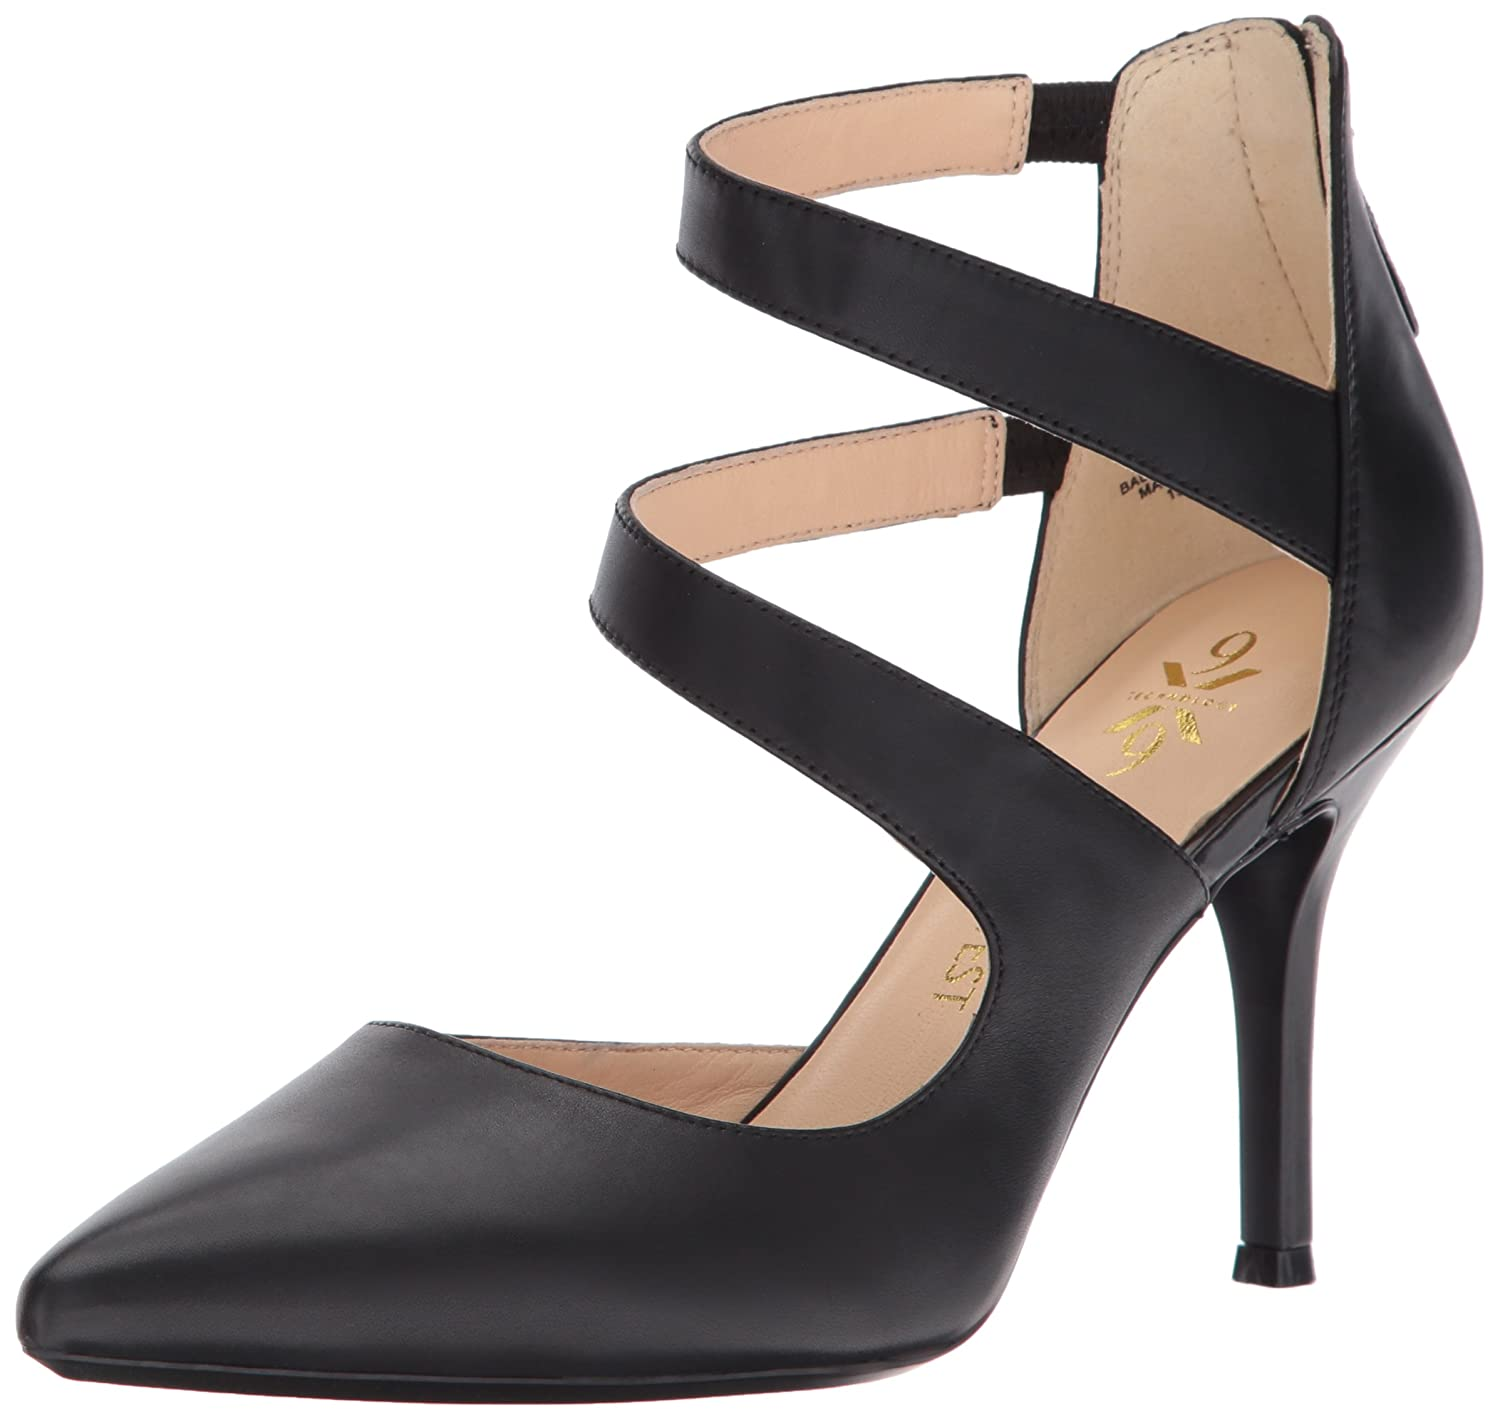 Nine West Women's Florent Pump B01N9CN4T4 7.5 B(M) US|Black Leather